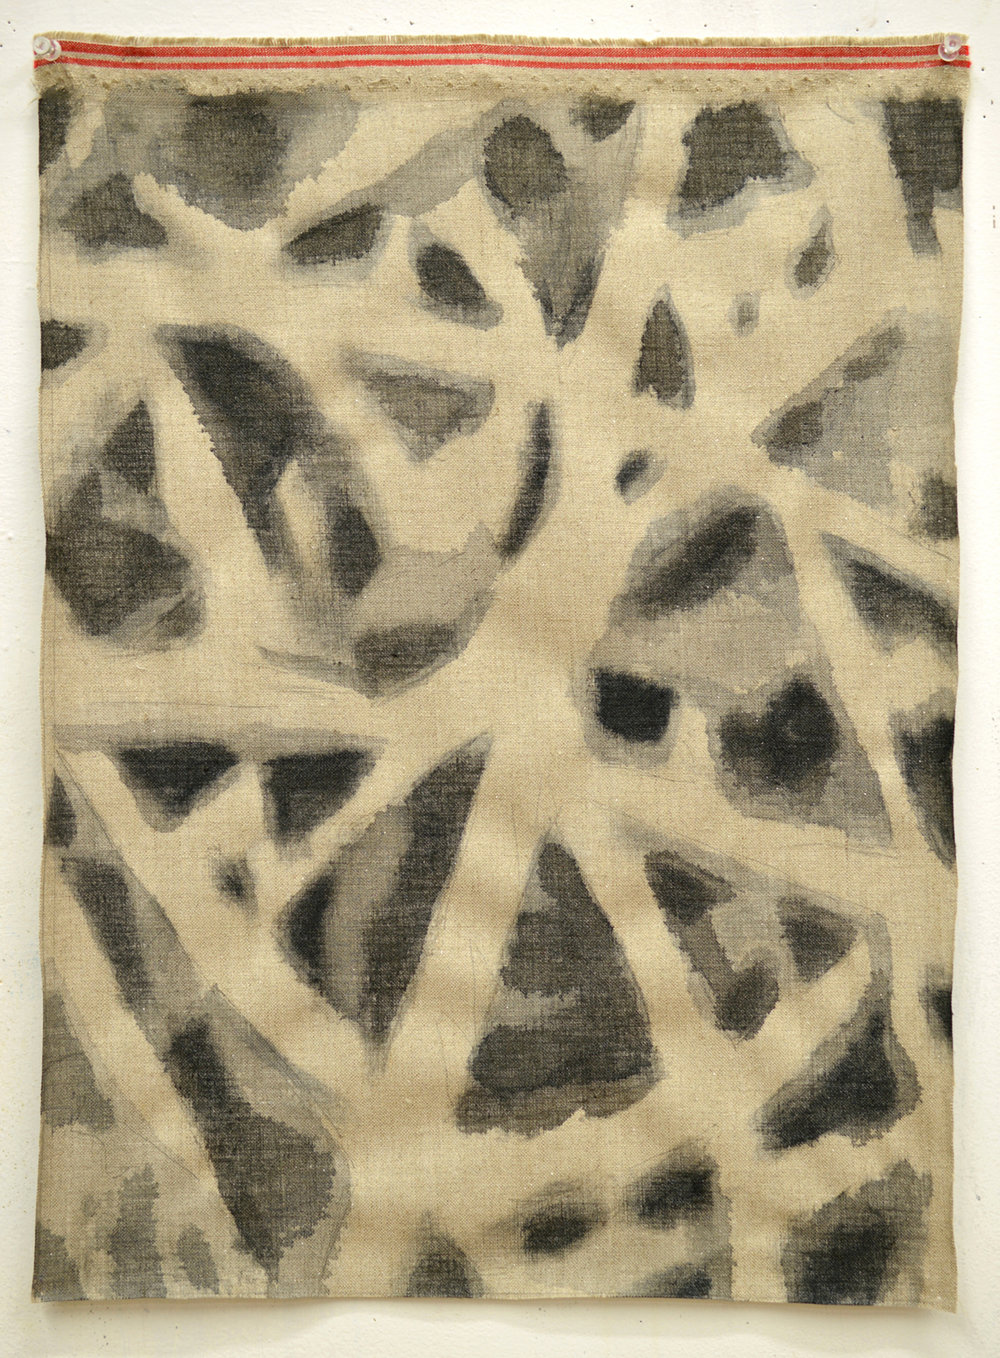 Coordinates Warped Unstretched   2016 oil on unstretched linen 22.5 x 16.5 inches